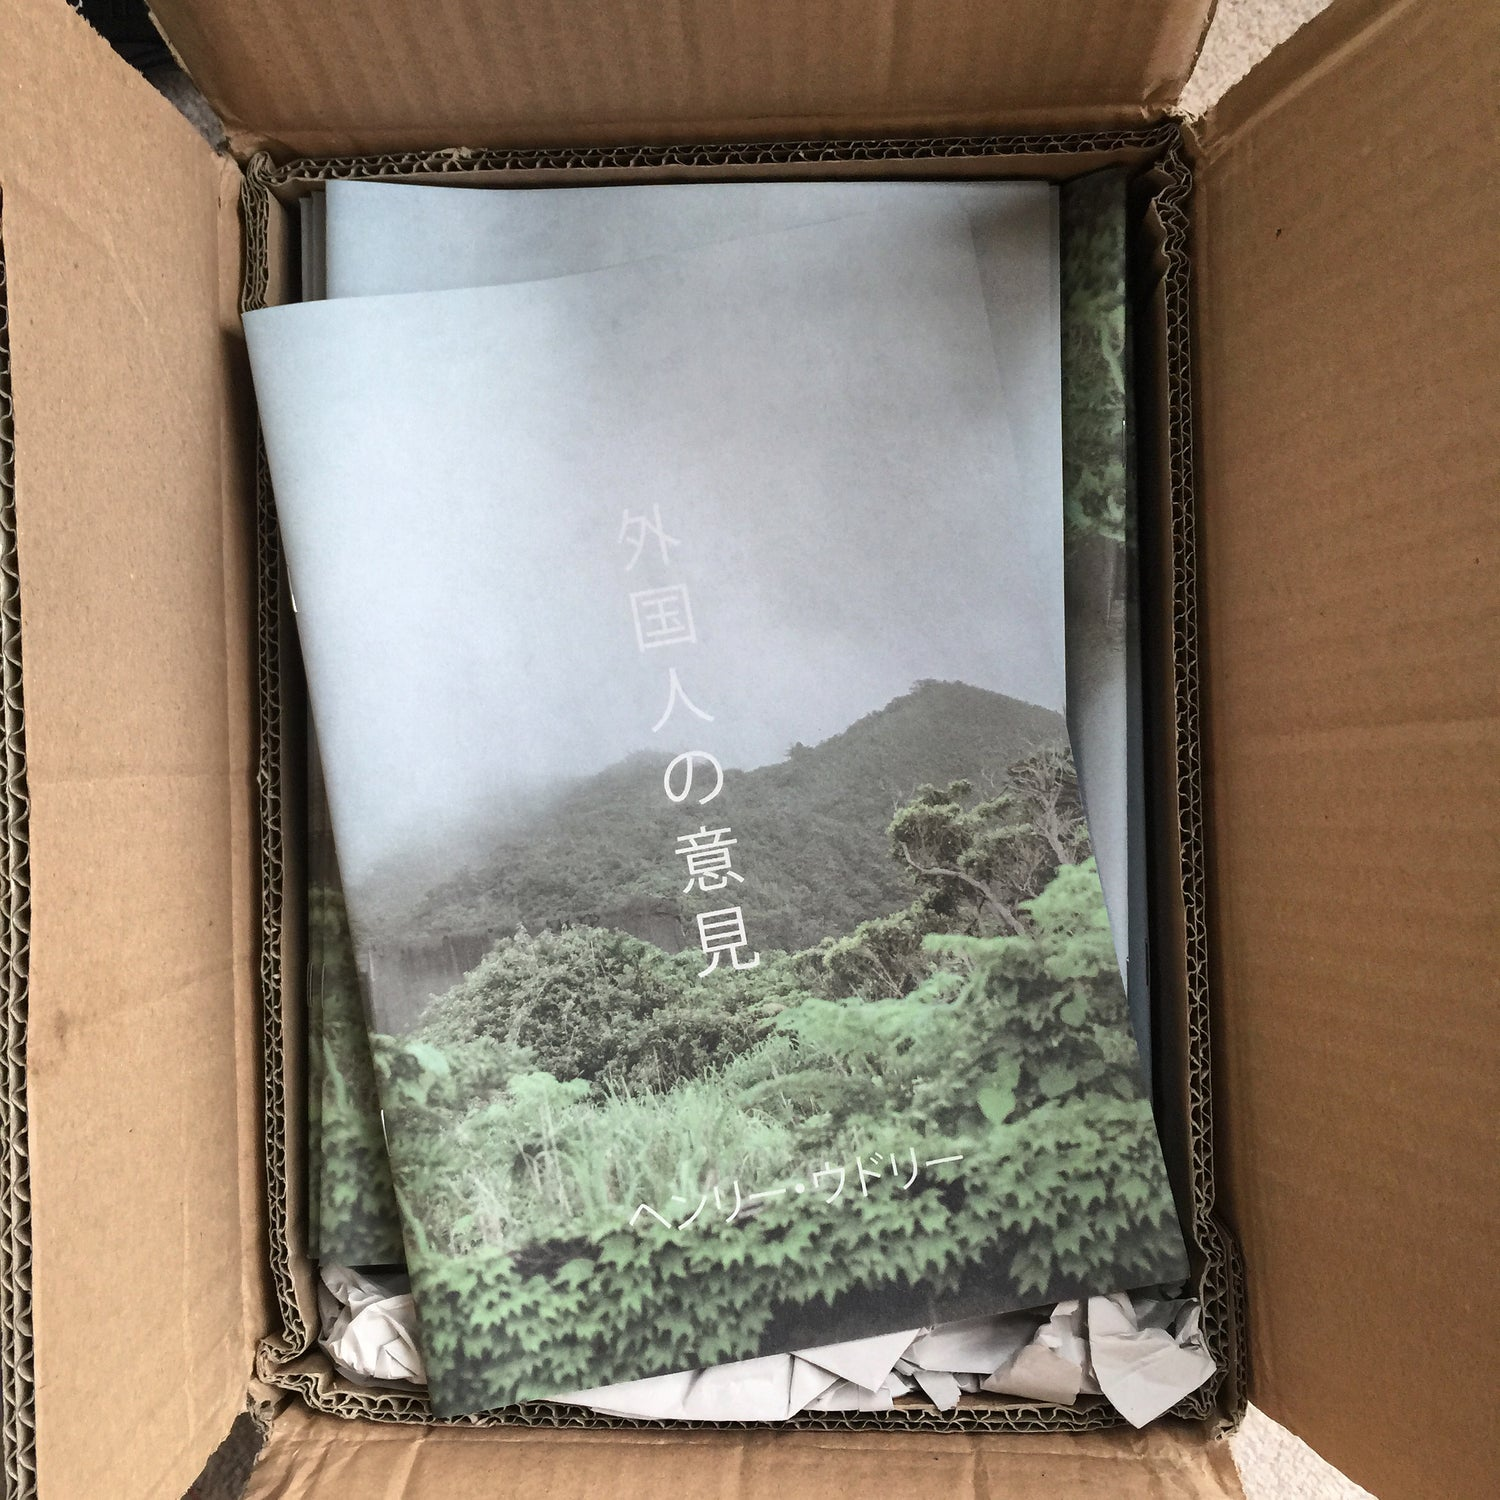 Image of Outsiders View photobook